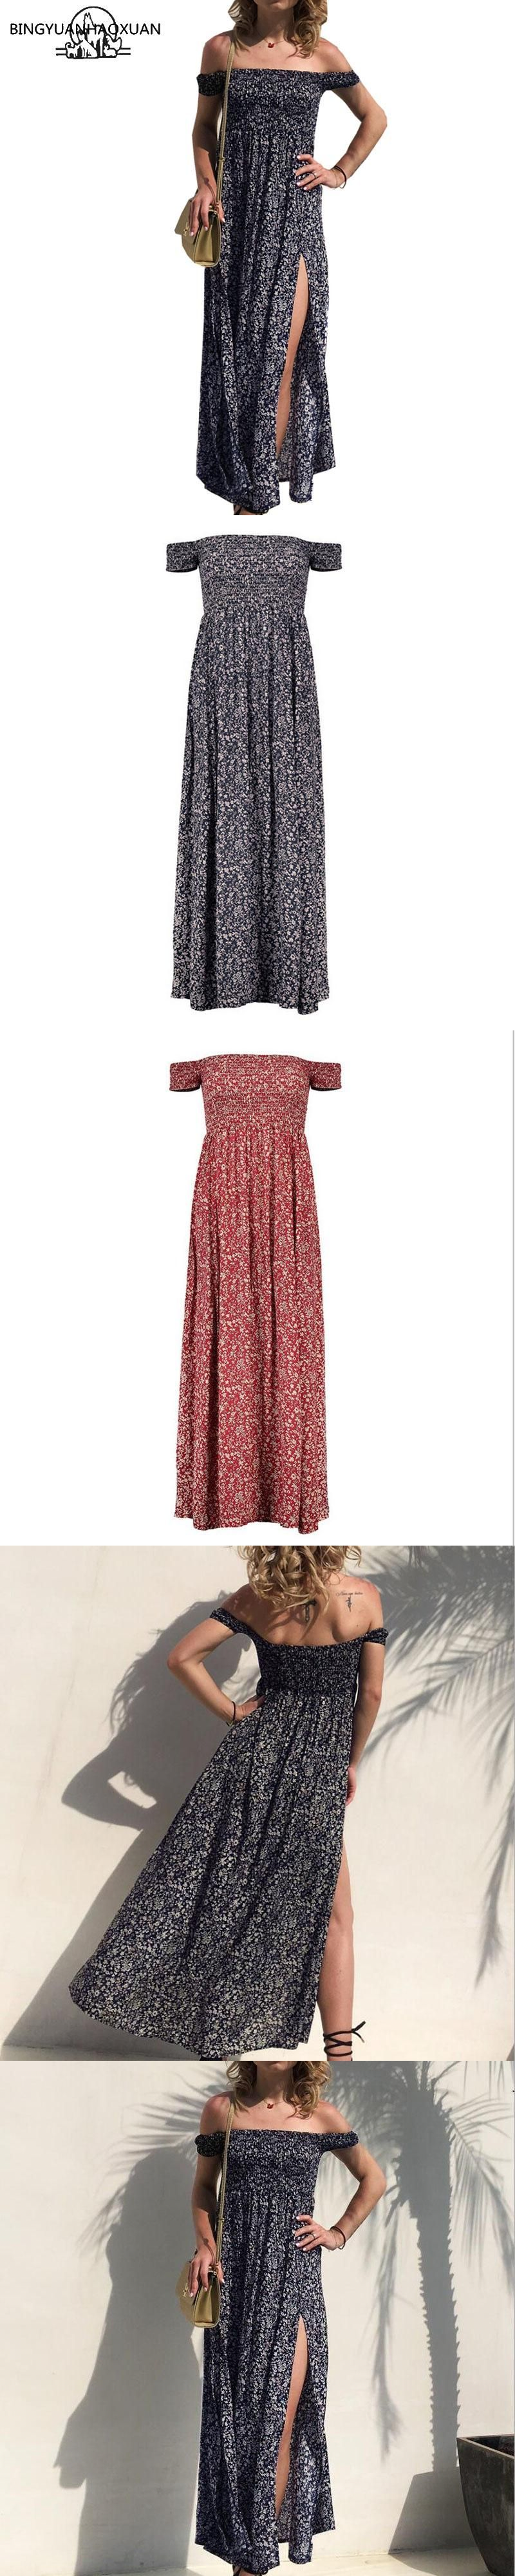 BINGYUANHAOXUAN New Arrival Summer Women Fashion Short Sleeve A collar Floral Print Maxi Dresses Sexy Beach Backless Dress #shortbacklessdress